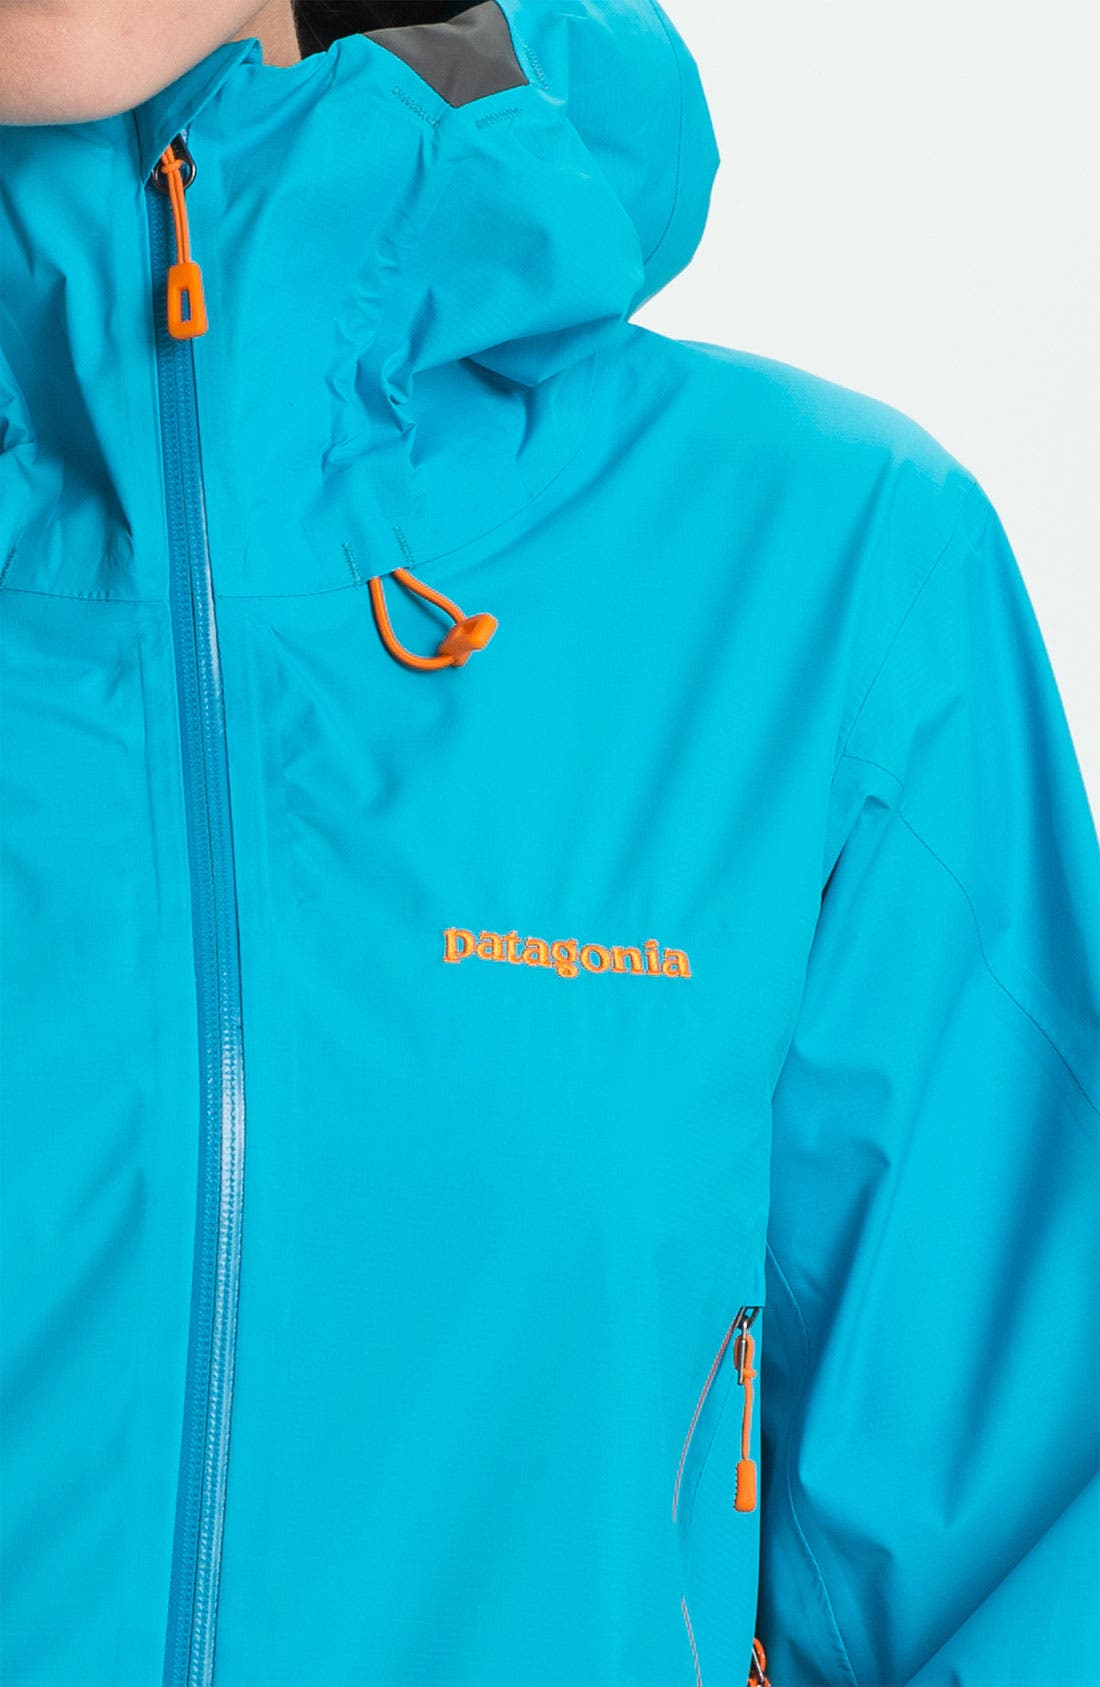 PATAGONIA,                             'Super Cell' Jacket,                             Alternate thumbnail 3, color,                             400